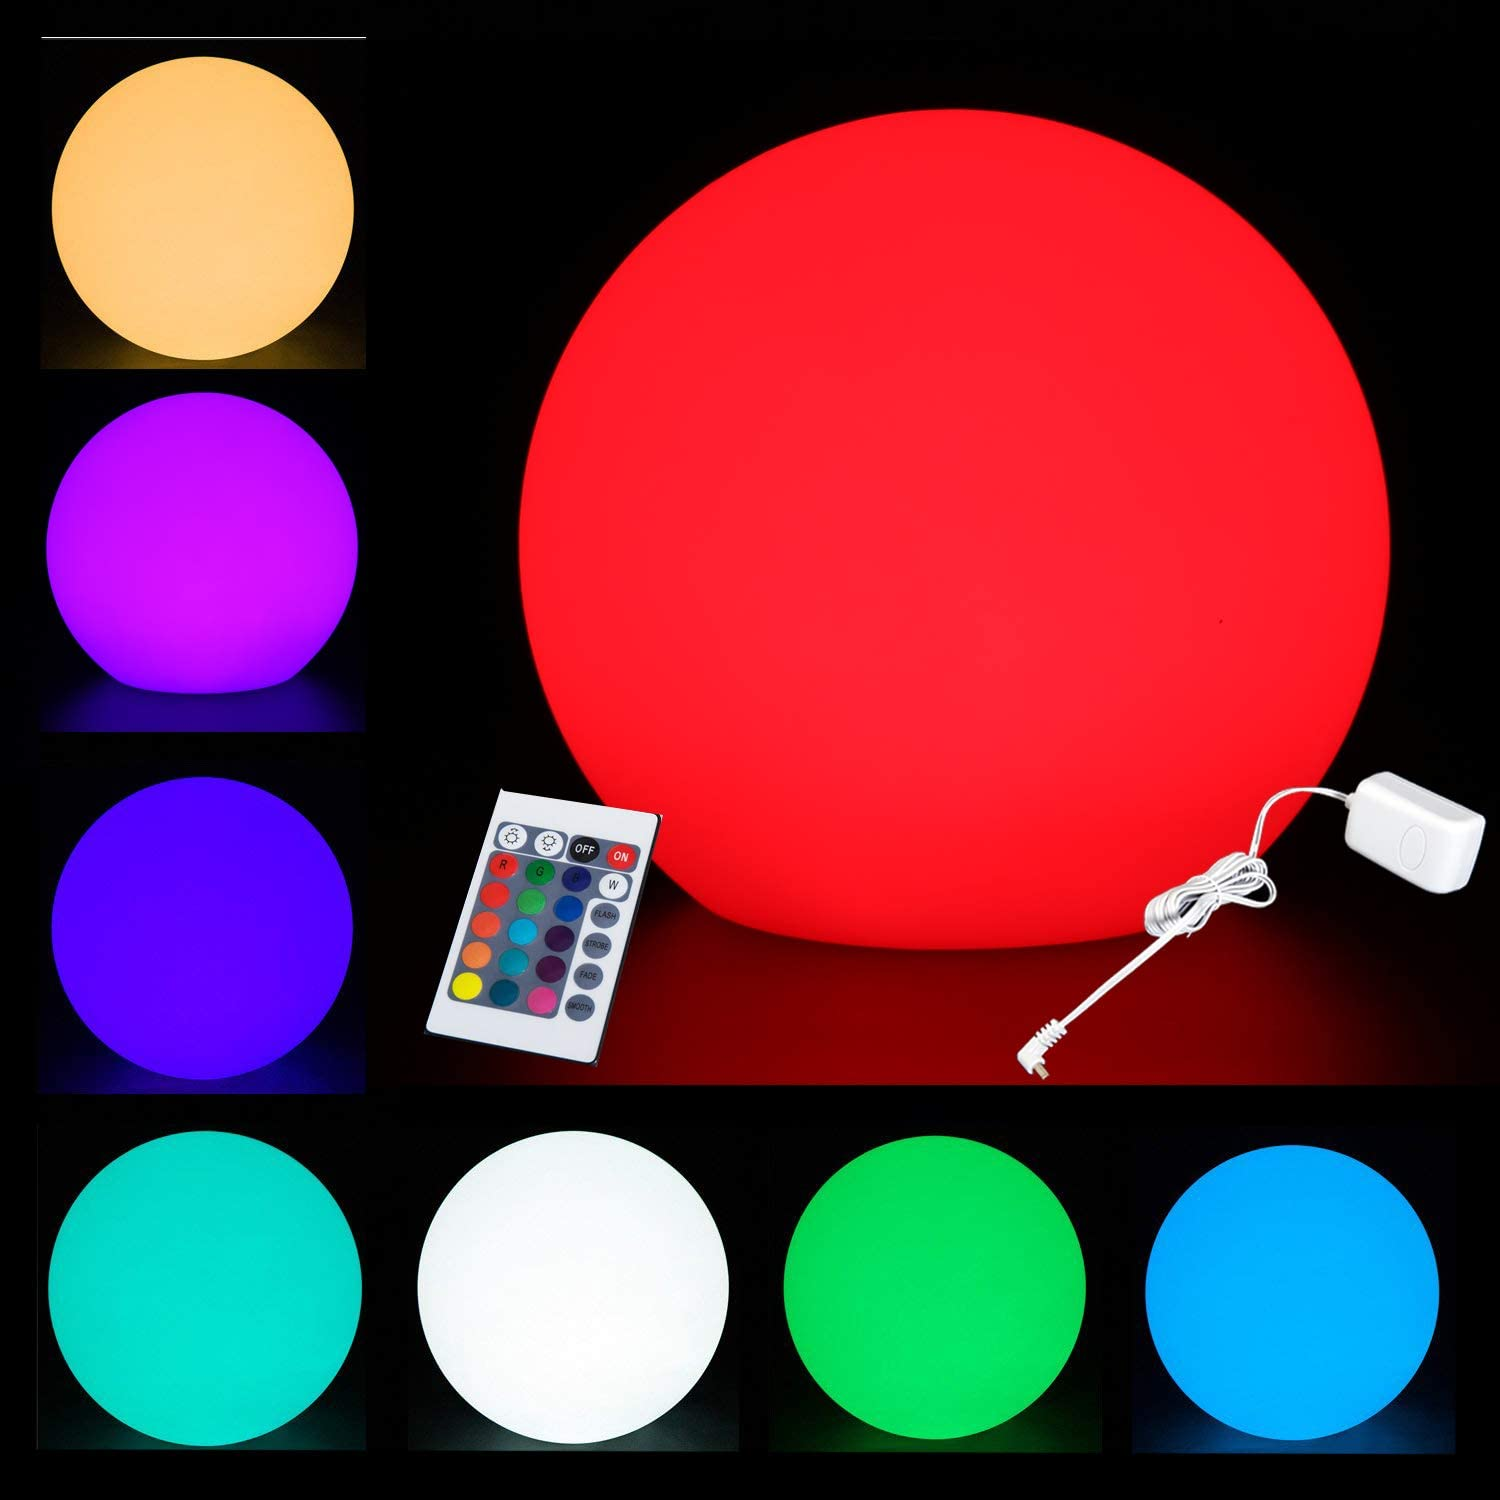 RISINGSUN LED Night Light Mood Lamp 16 Multicolor 8'' Ball Dimmable with Remote Control Cool Color Changing for Indoor Outdoor Parties Home & Bar and Party & Garden & Pool & Patio Ambient